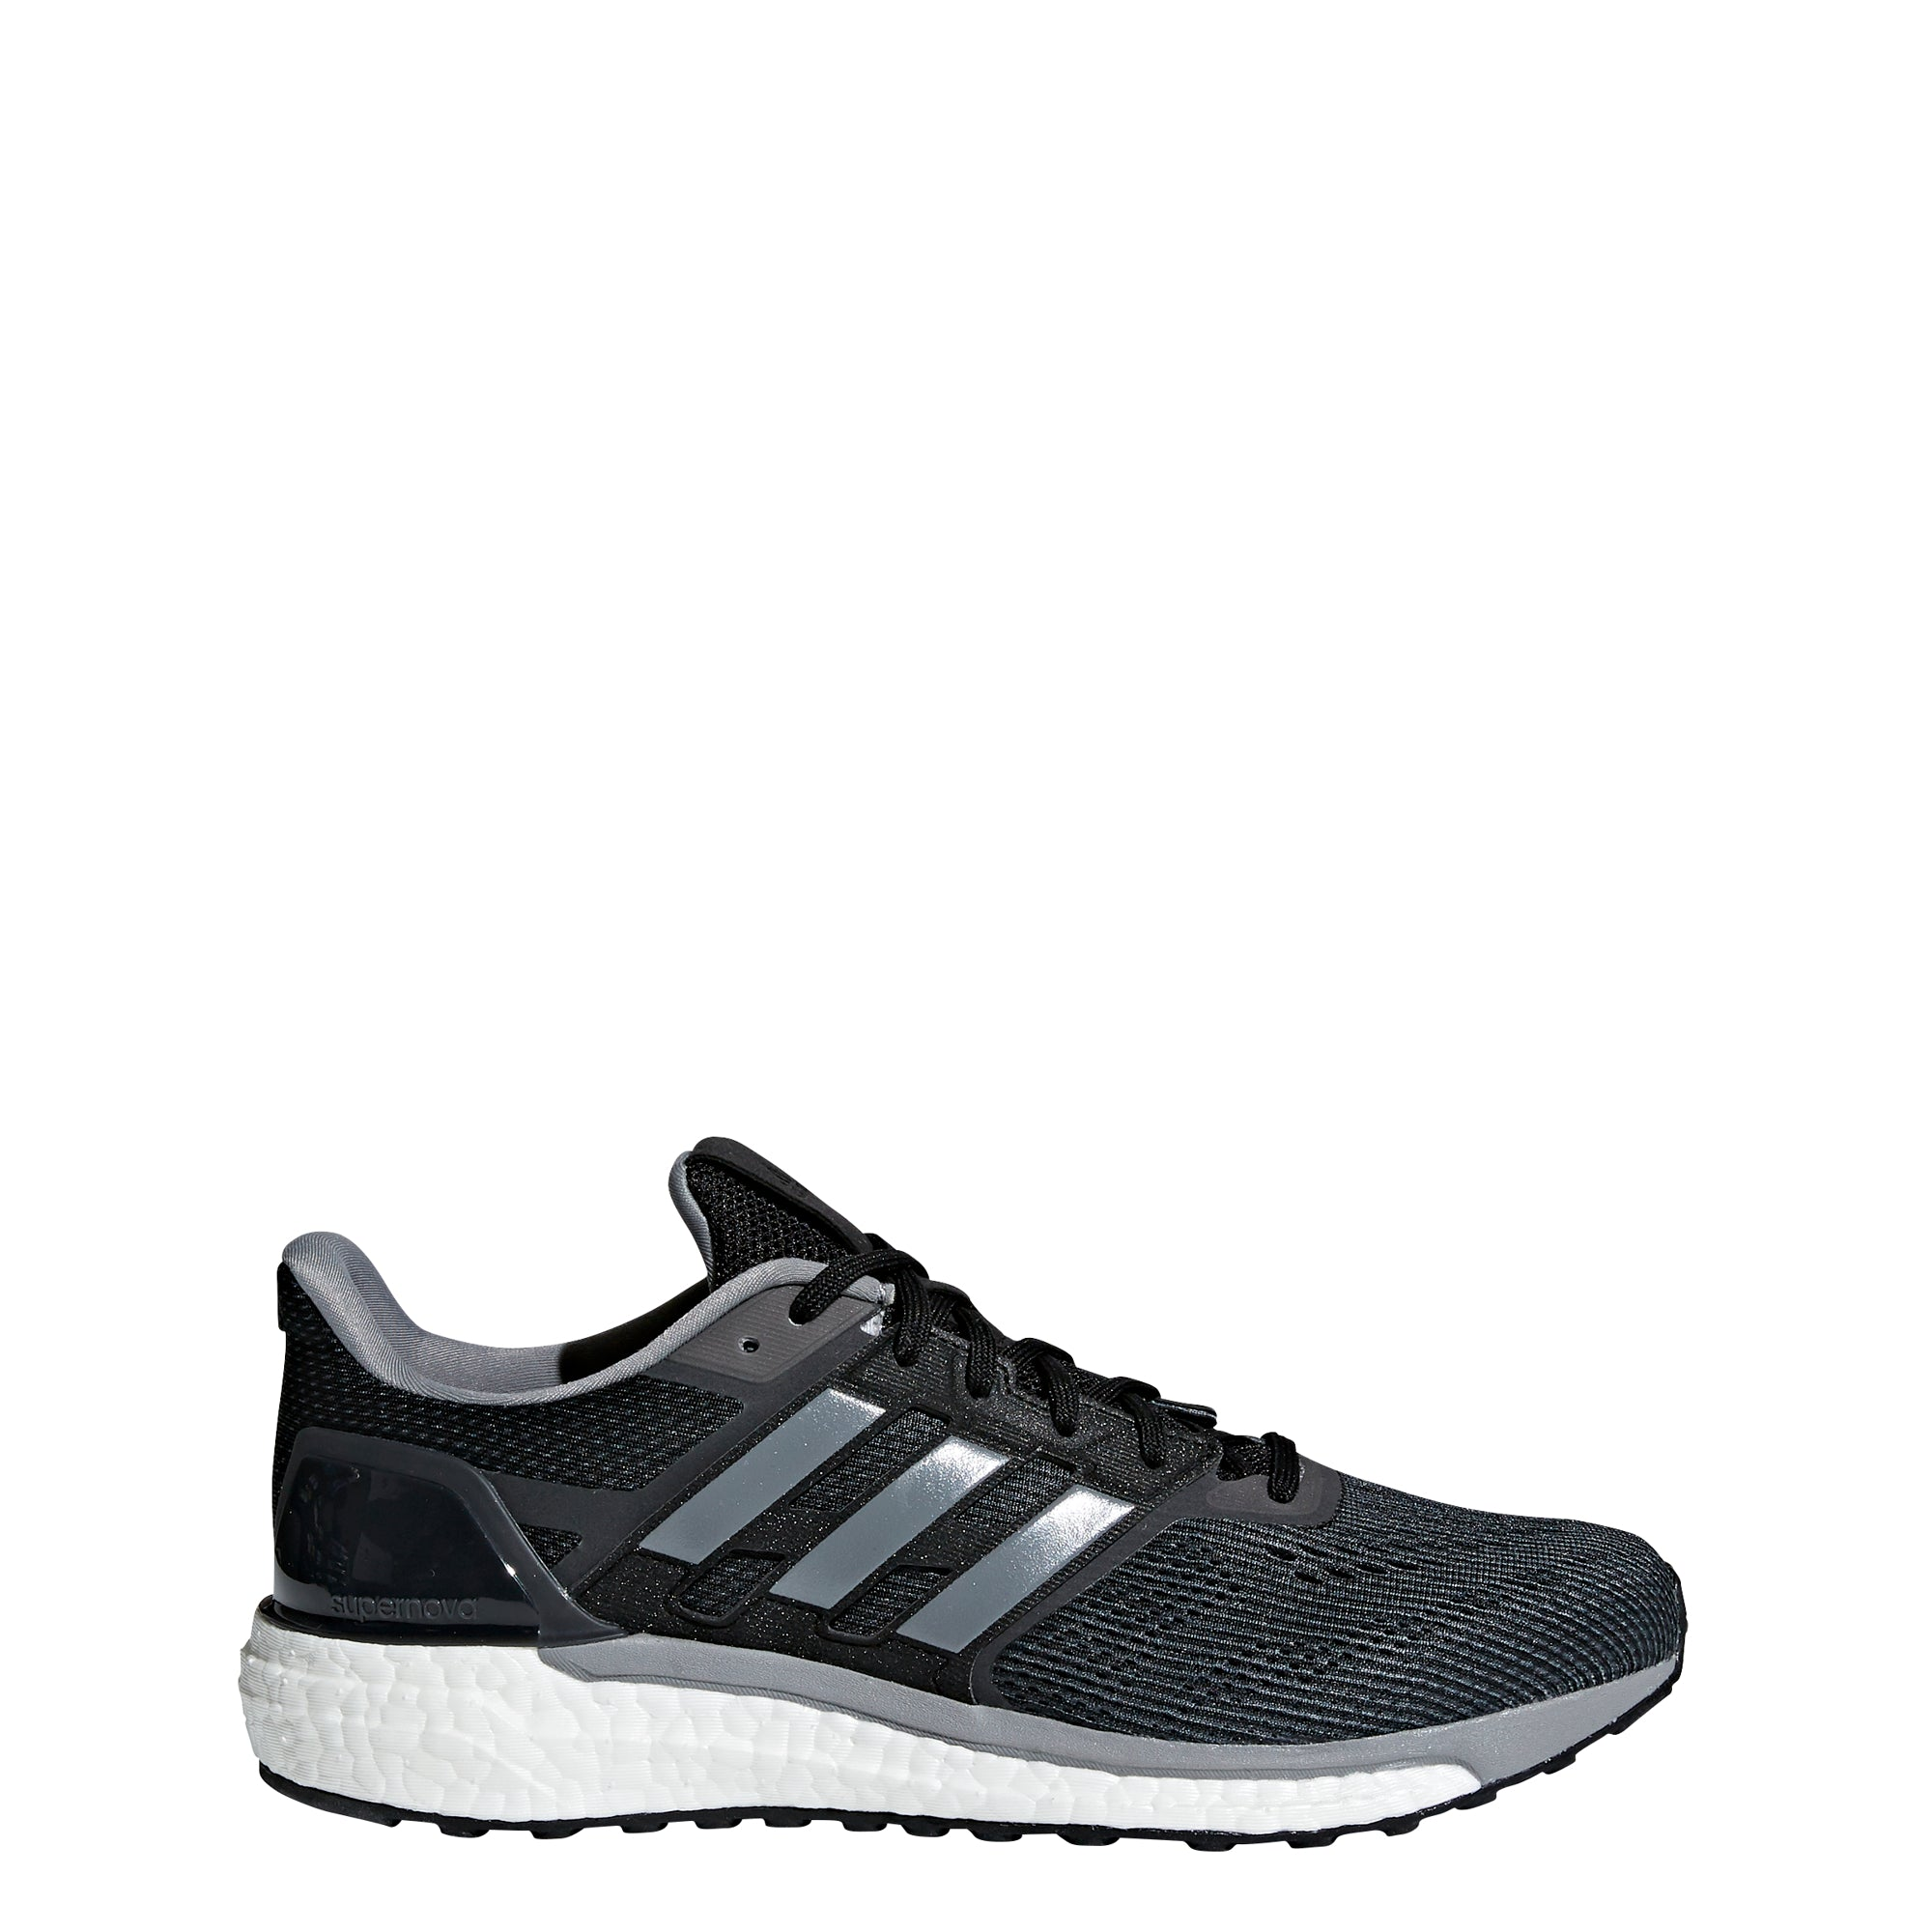 708344e2e Buy adidas Men SUPERNOVA M Running Shoes